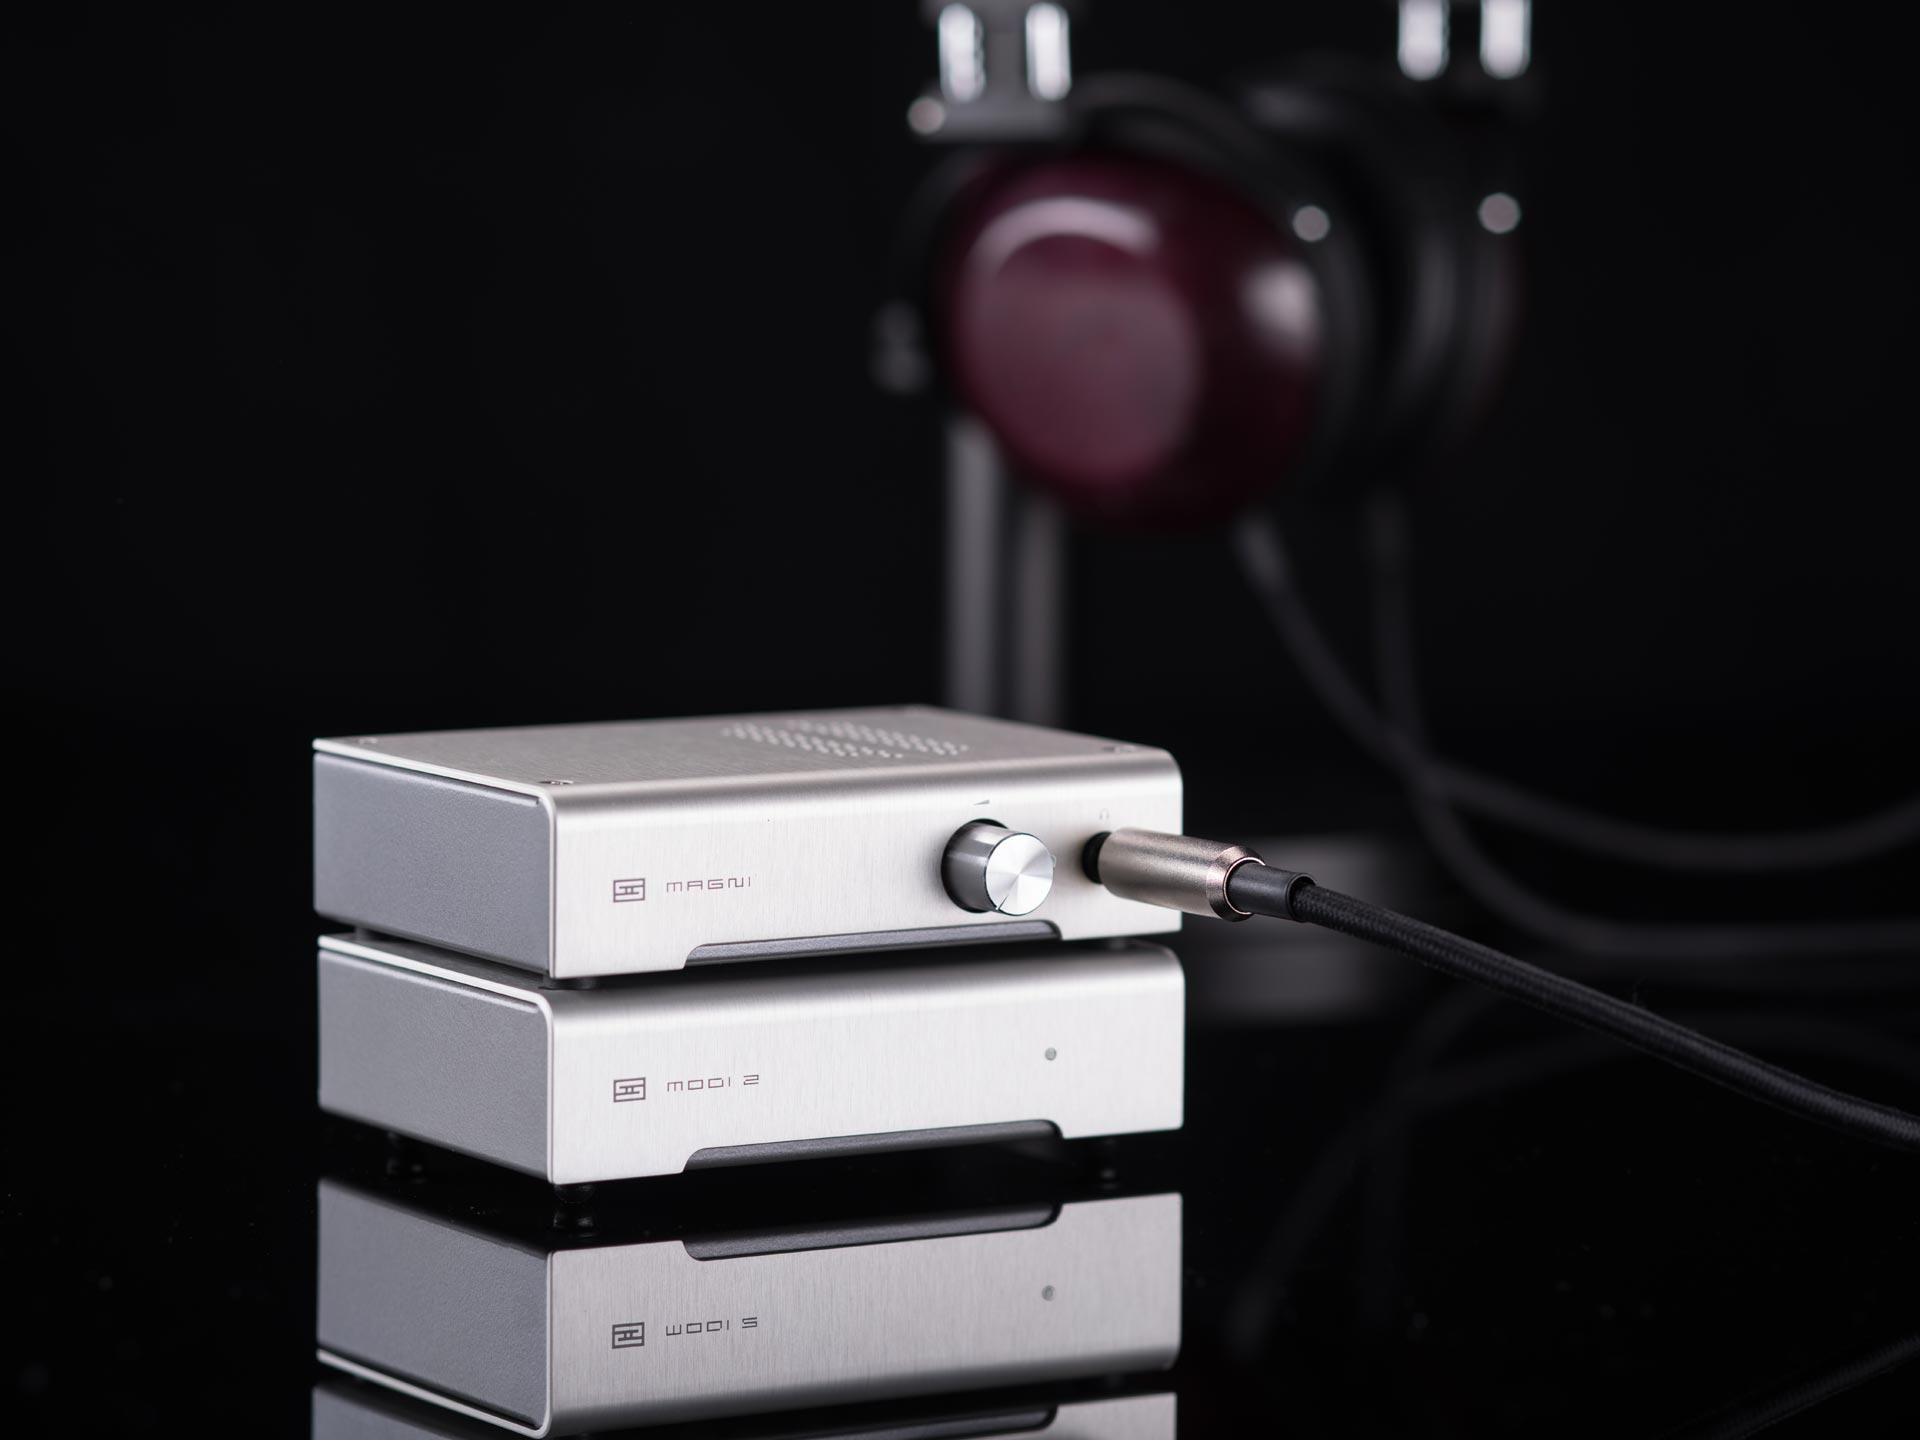 Schiit Audio Headphone Amps And Dacs Made In Usa Headphone Amp High End Headphones Audio